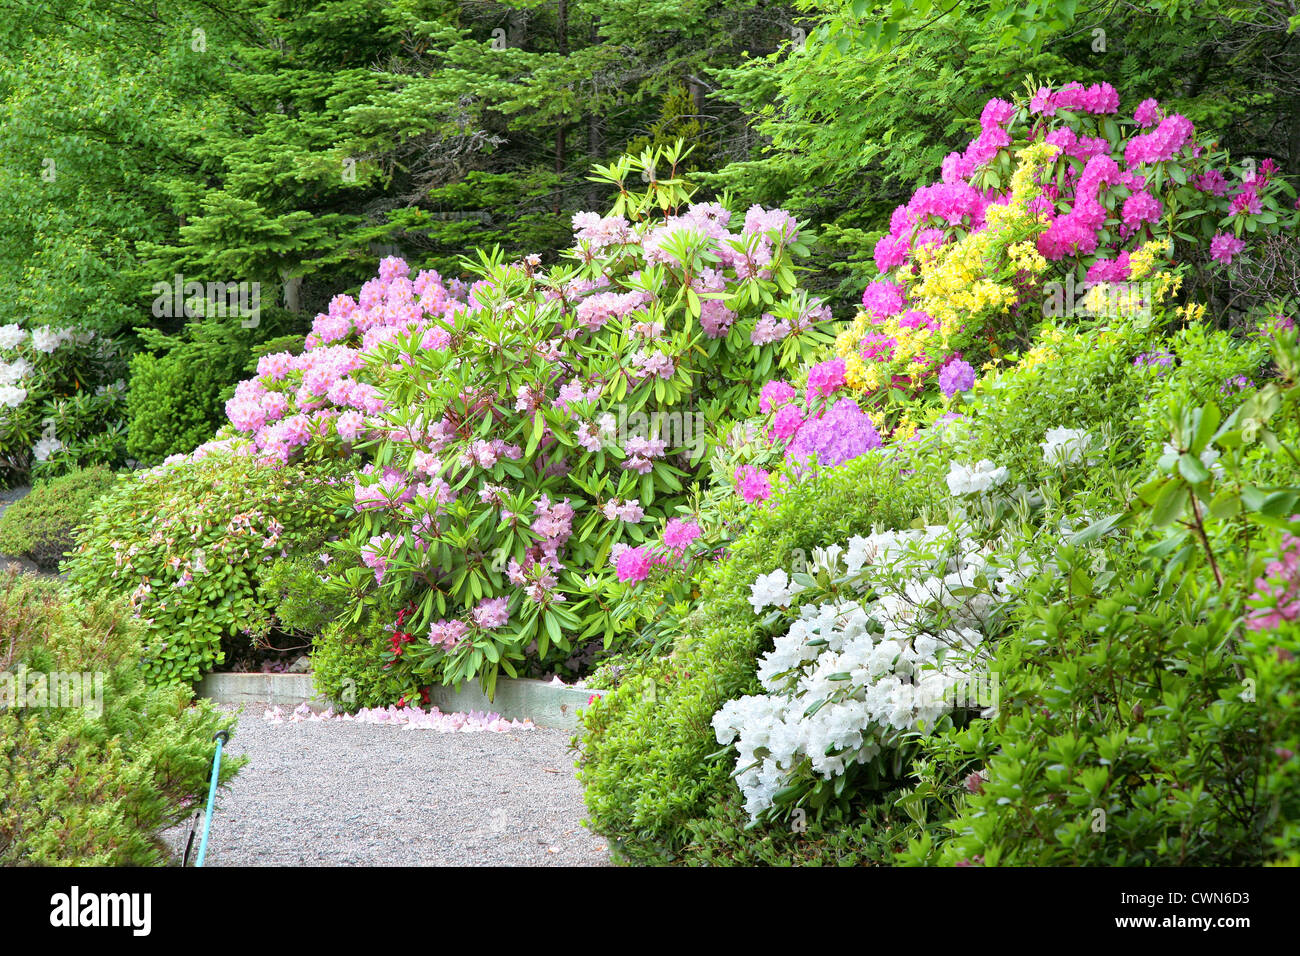 A path goes through a group of blooming rhododendrons and azaleas in the spring garden. Stock Photo